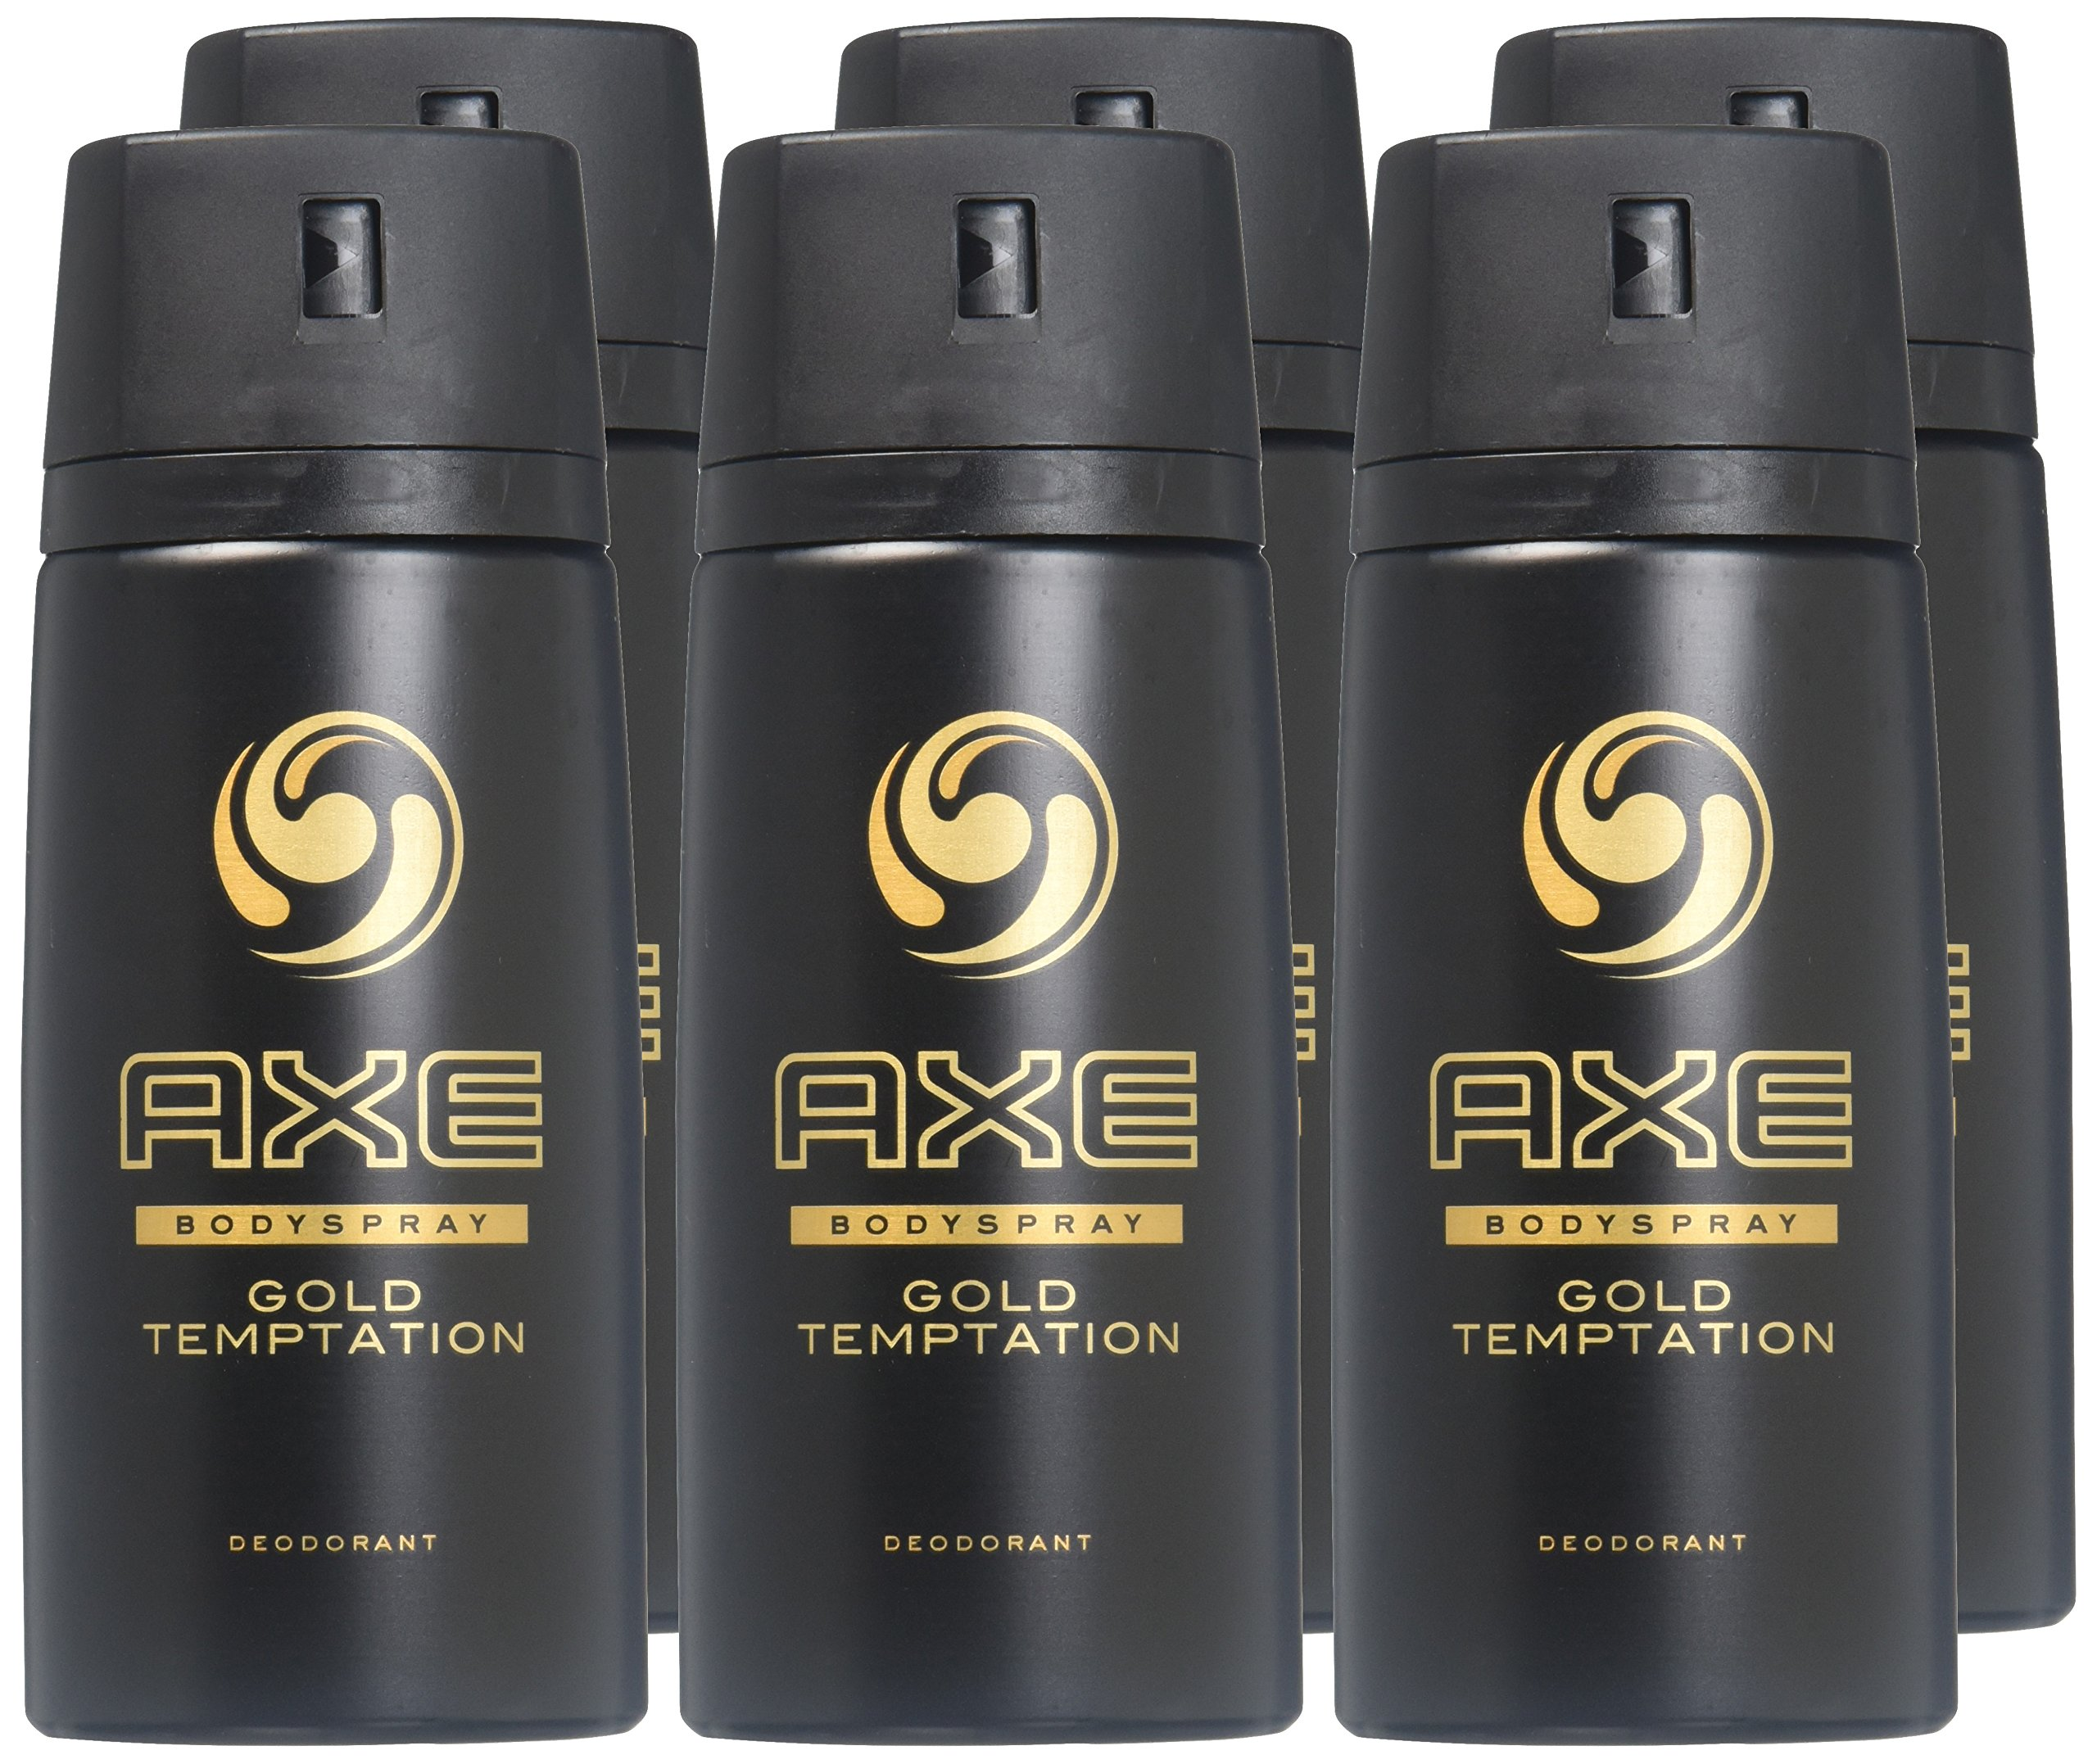 AXE Deodorant Bodyspray, Gold Temptation 4 oz (Pack of 6) by AXE (Image #2)